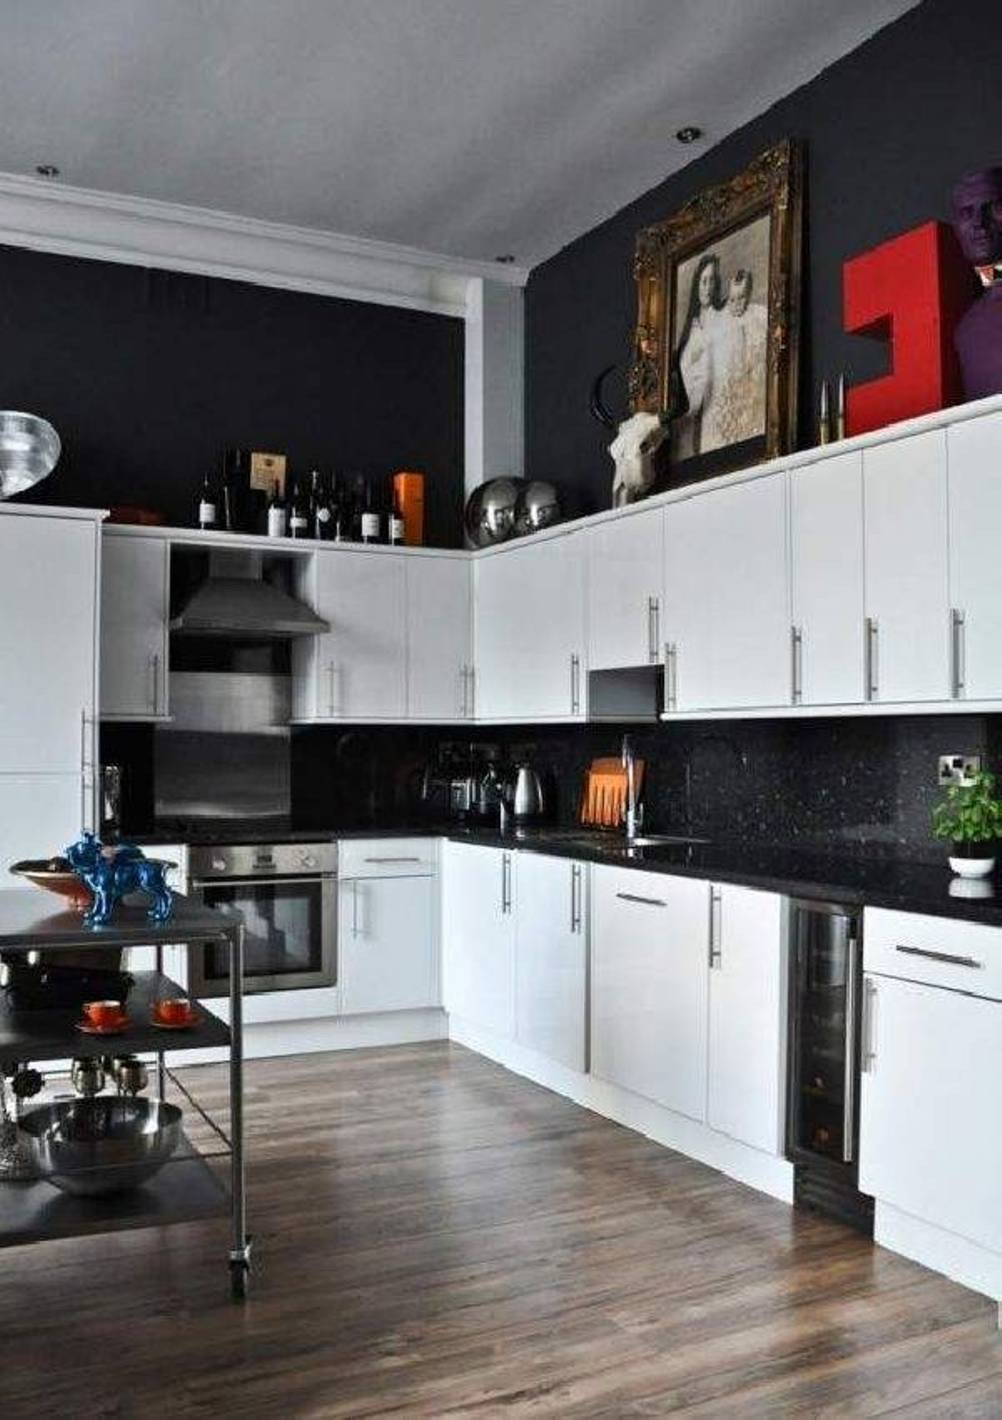 Black and White Kitchen Decor Best Of Black and White Kitchen Decor to Feed Exclusive and Modern Passion